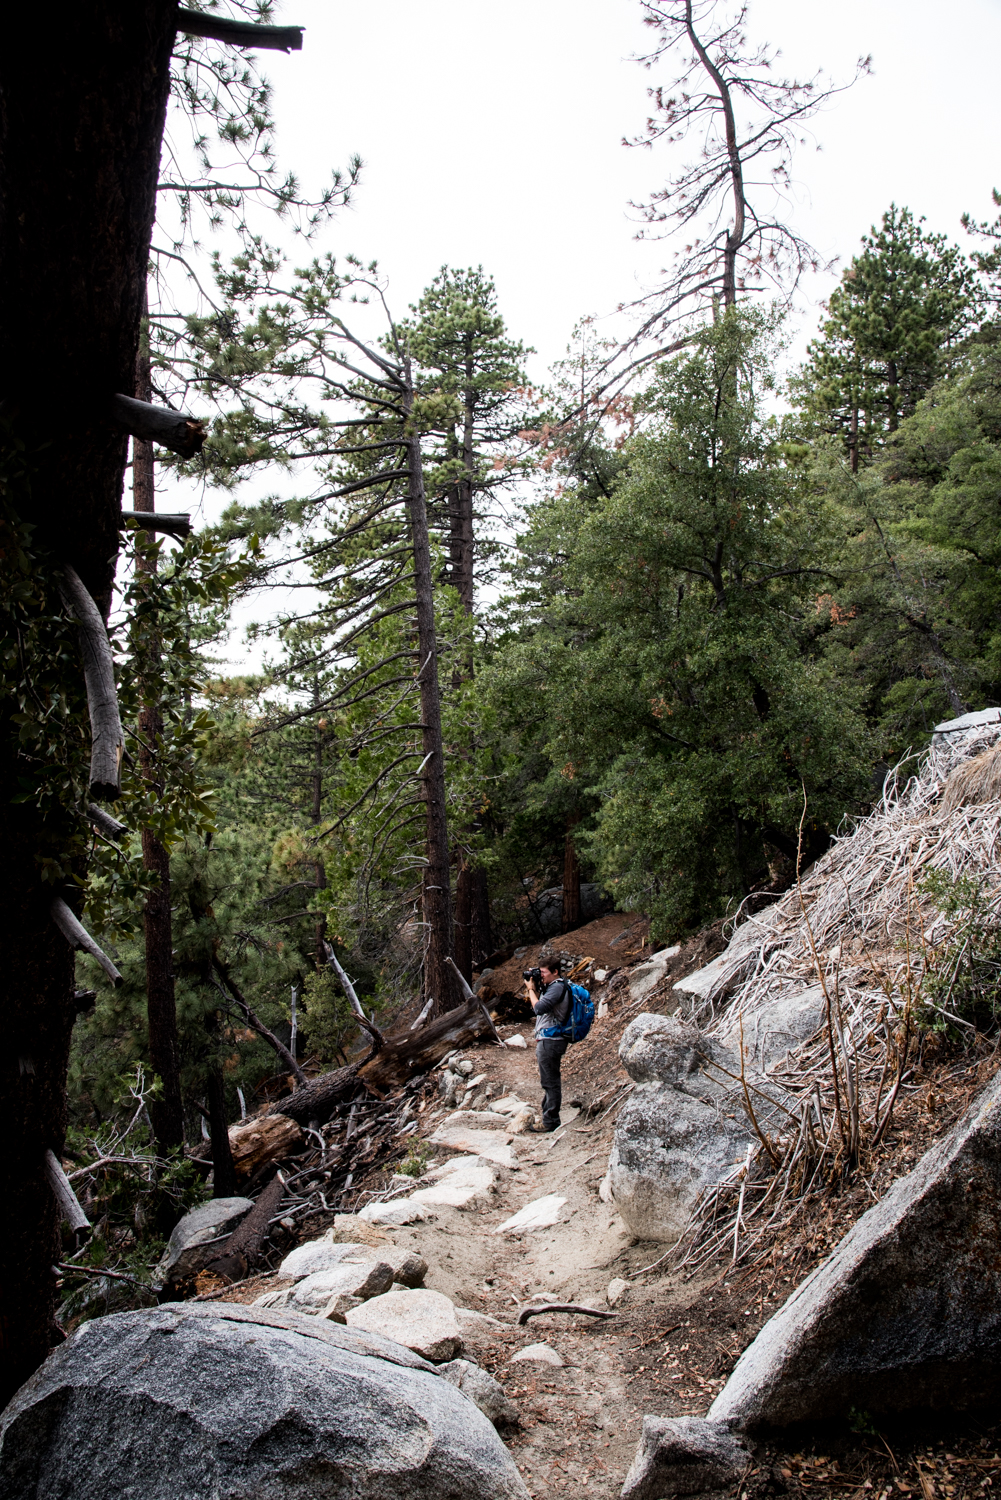 The trail is at times rocky with a steep drop off on one side